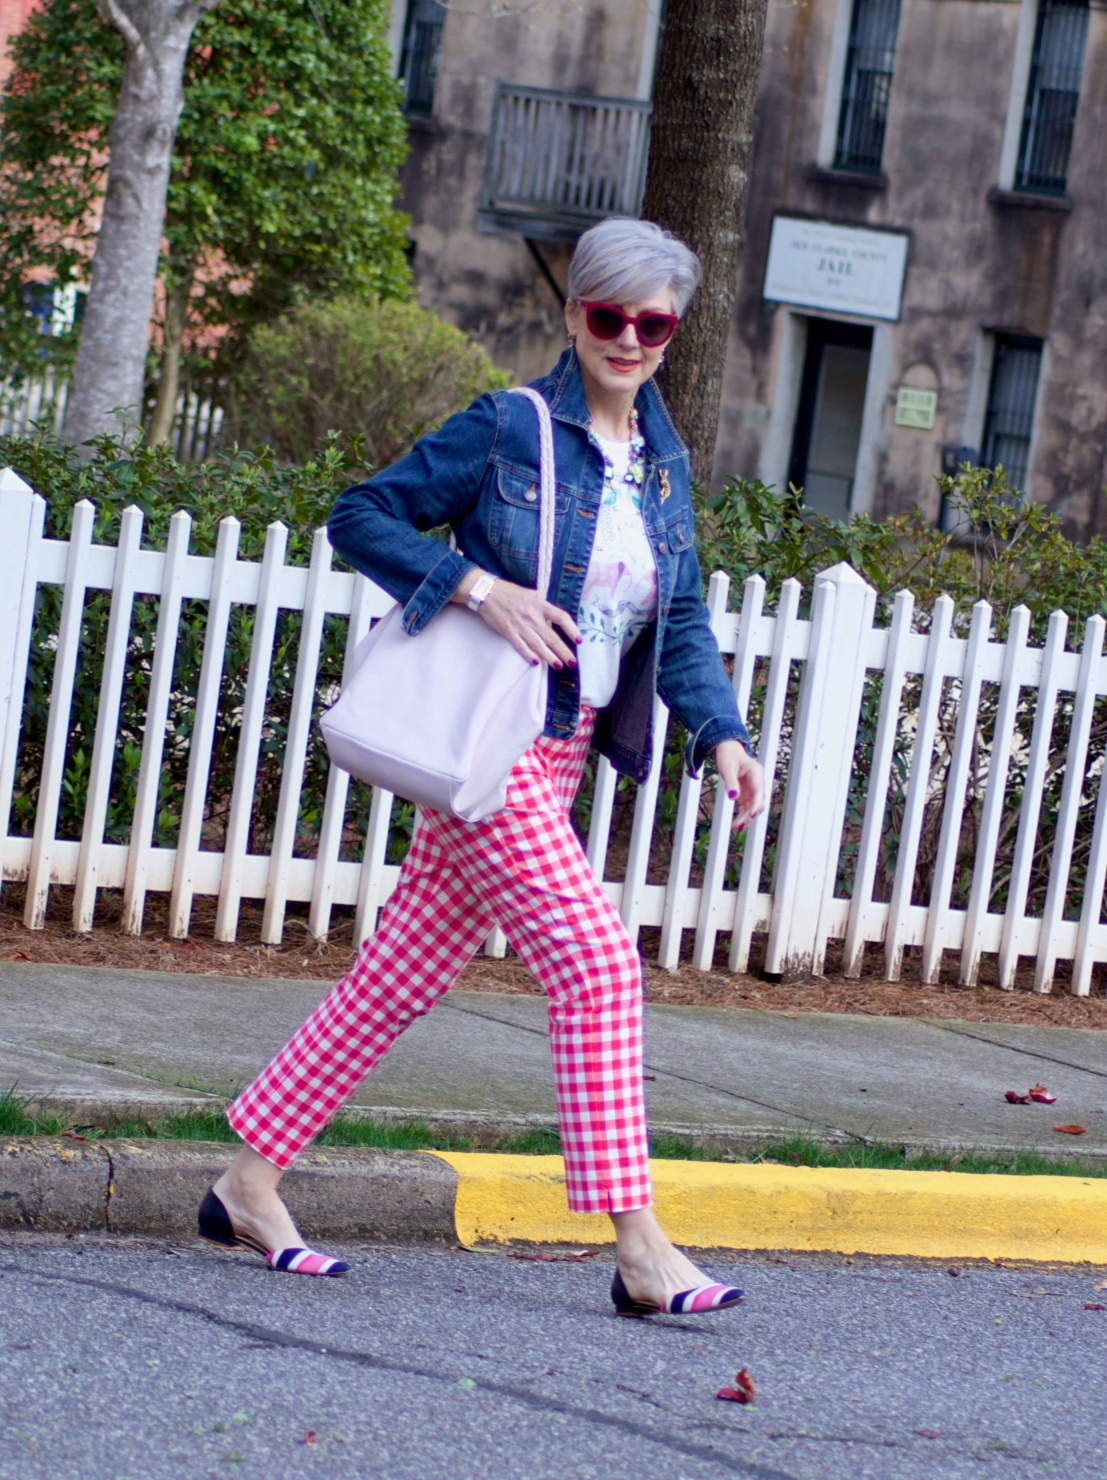 beth from Style at a Certain Age wears pink gingham pants, graphic tee, and denim jacket